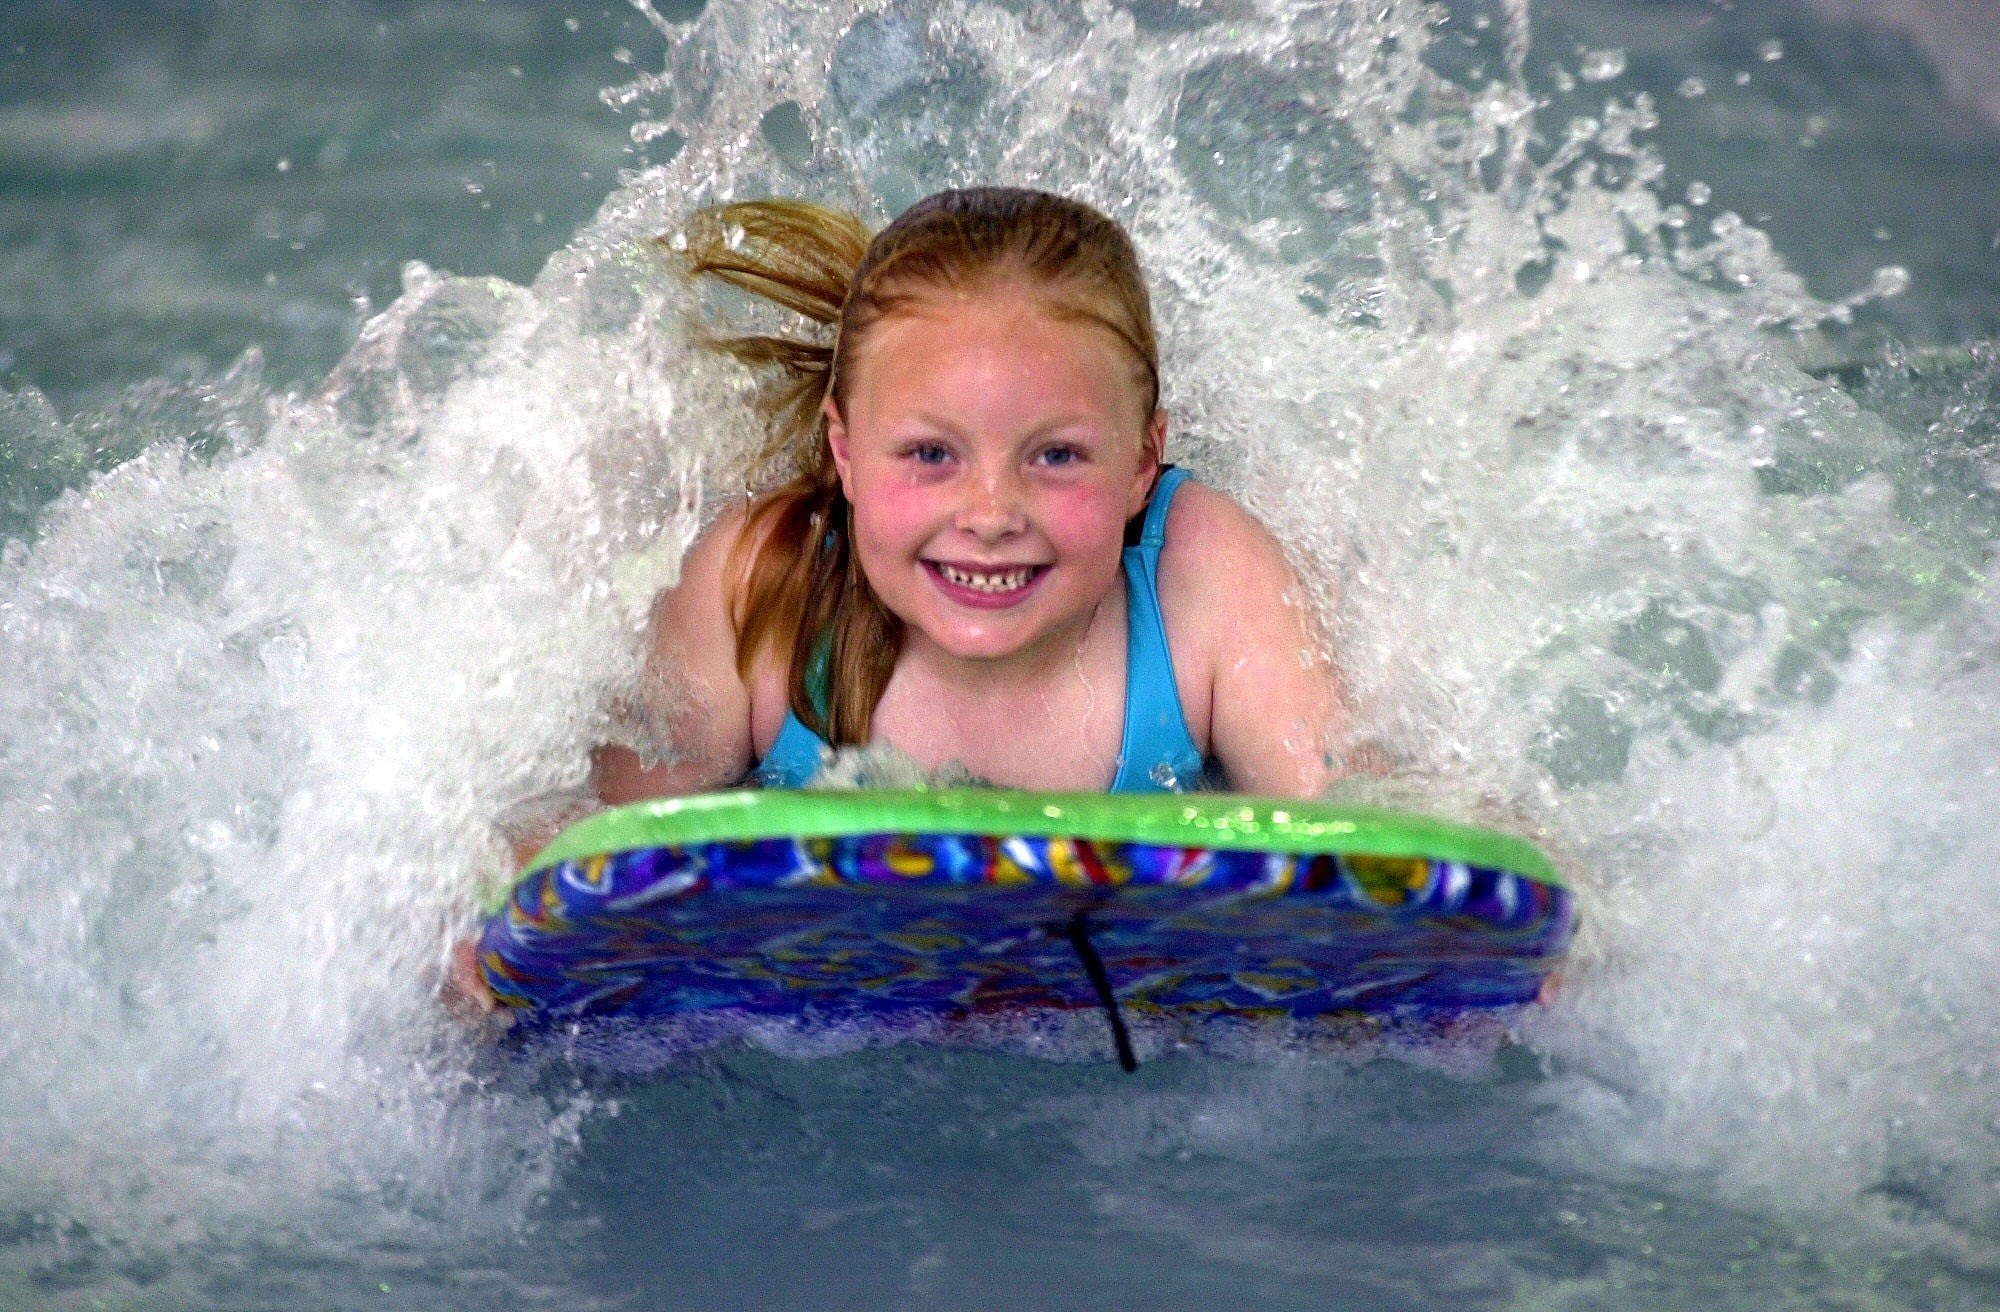 Wave pool at Blacktown Leisure Centre, Stanhope